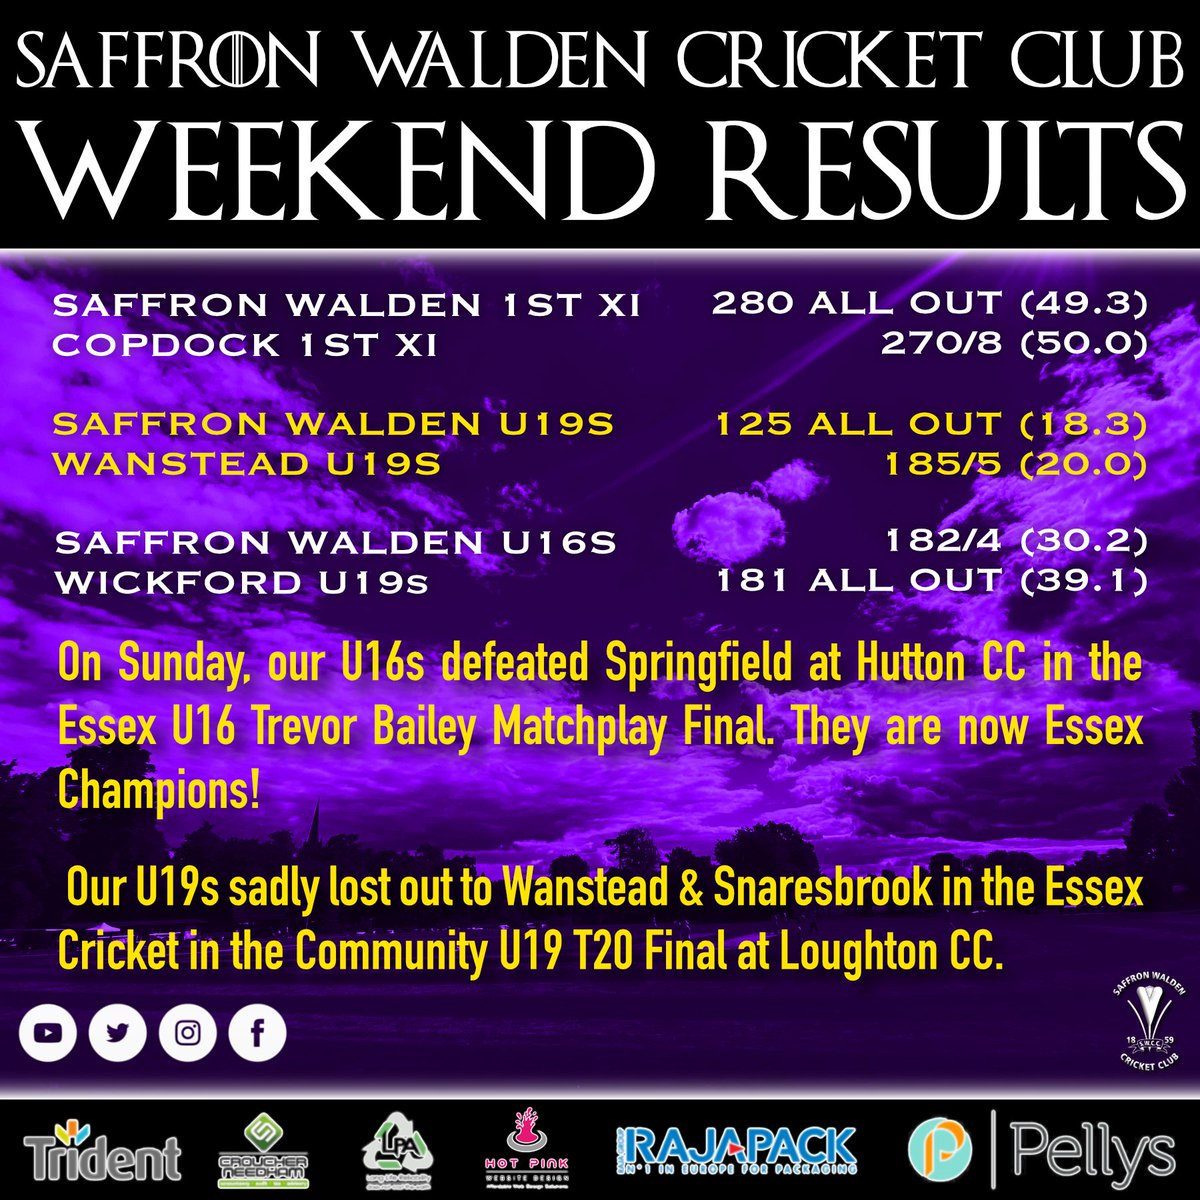 Weekend results! Great wins for the 1st XI and the new U16 Essex Champions! #crocuscricketcommunity #saffronwalden #cricket https://t.co/pxZxRMaoms